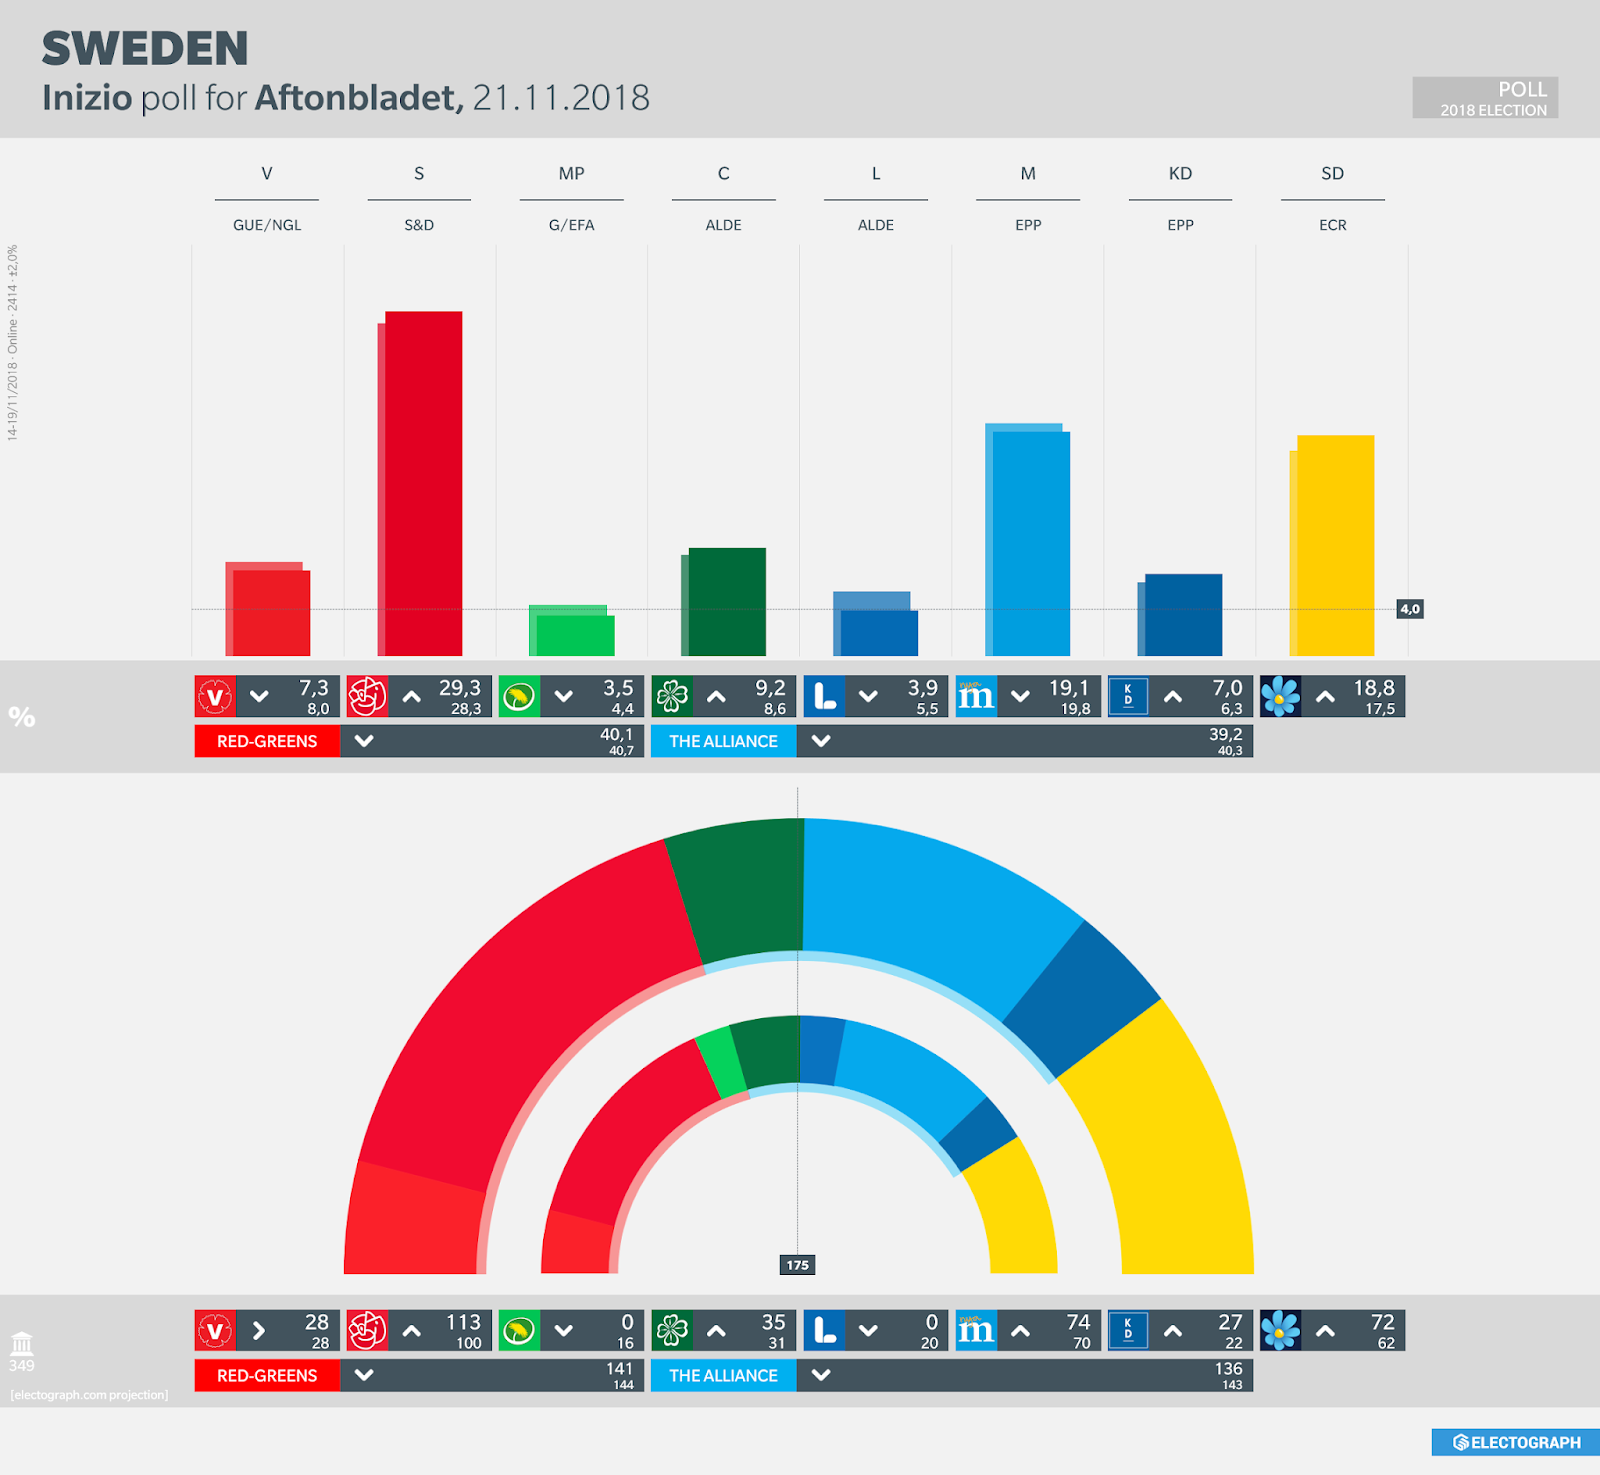 SWEDEN: Inizio poll chart for Aftonbladet, 21 November 2018